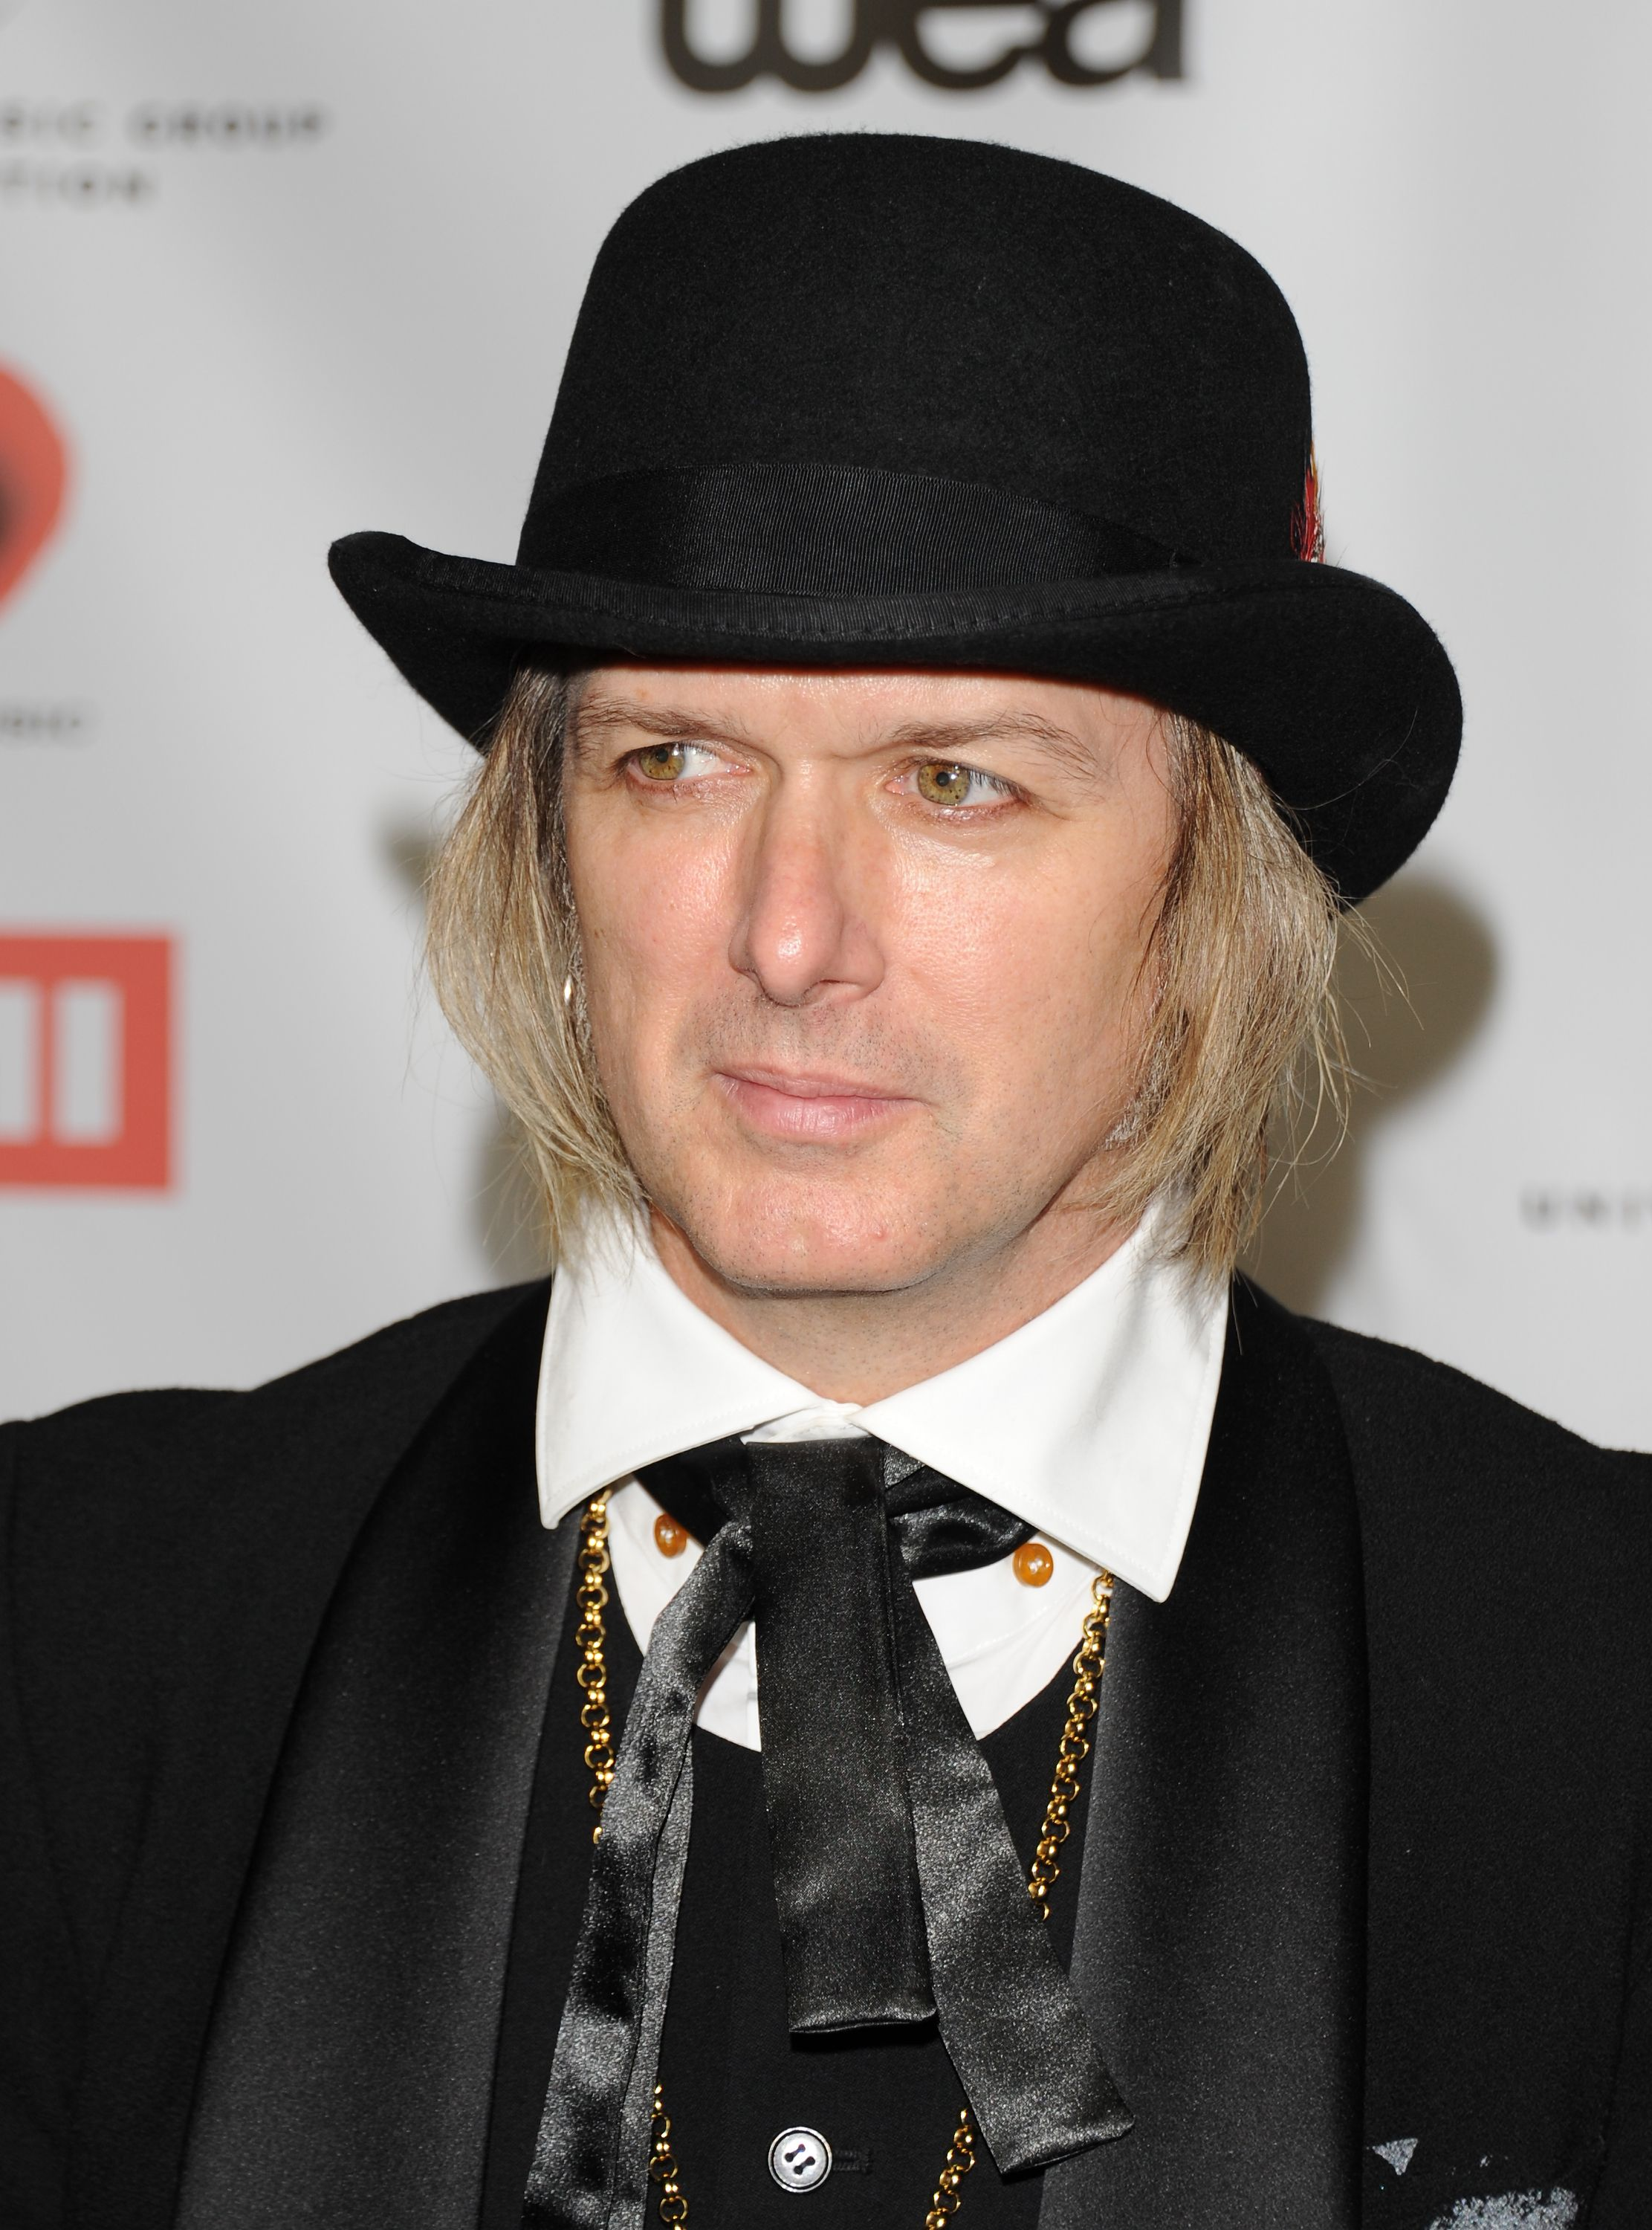 Michael Lockwood at the NARM Music Biz Awards Dinner Party on May 10, 2012 in Century City, California | Photo: JB Lacroix/WireImage/Getty Images